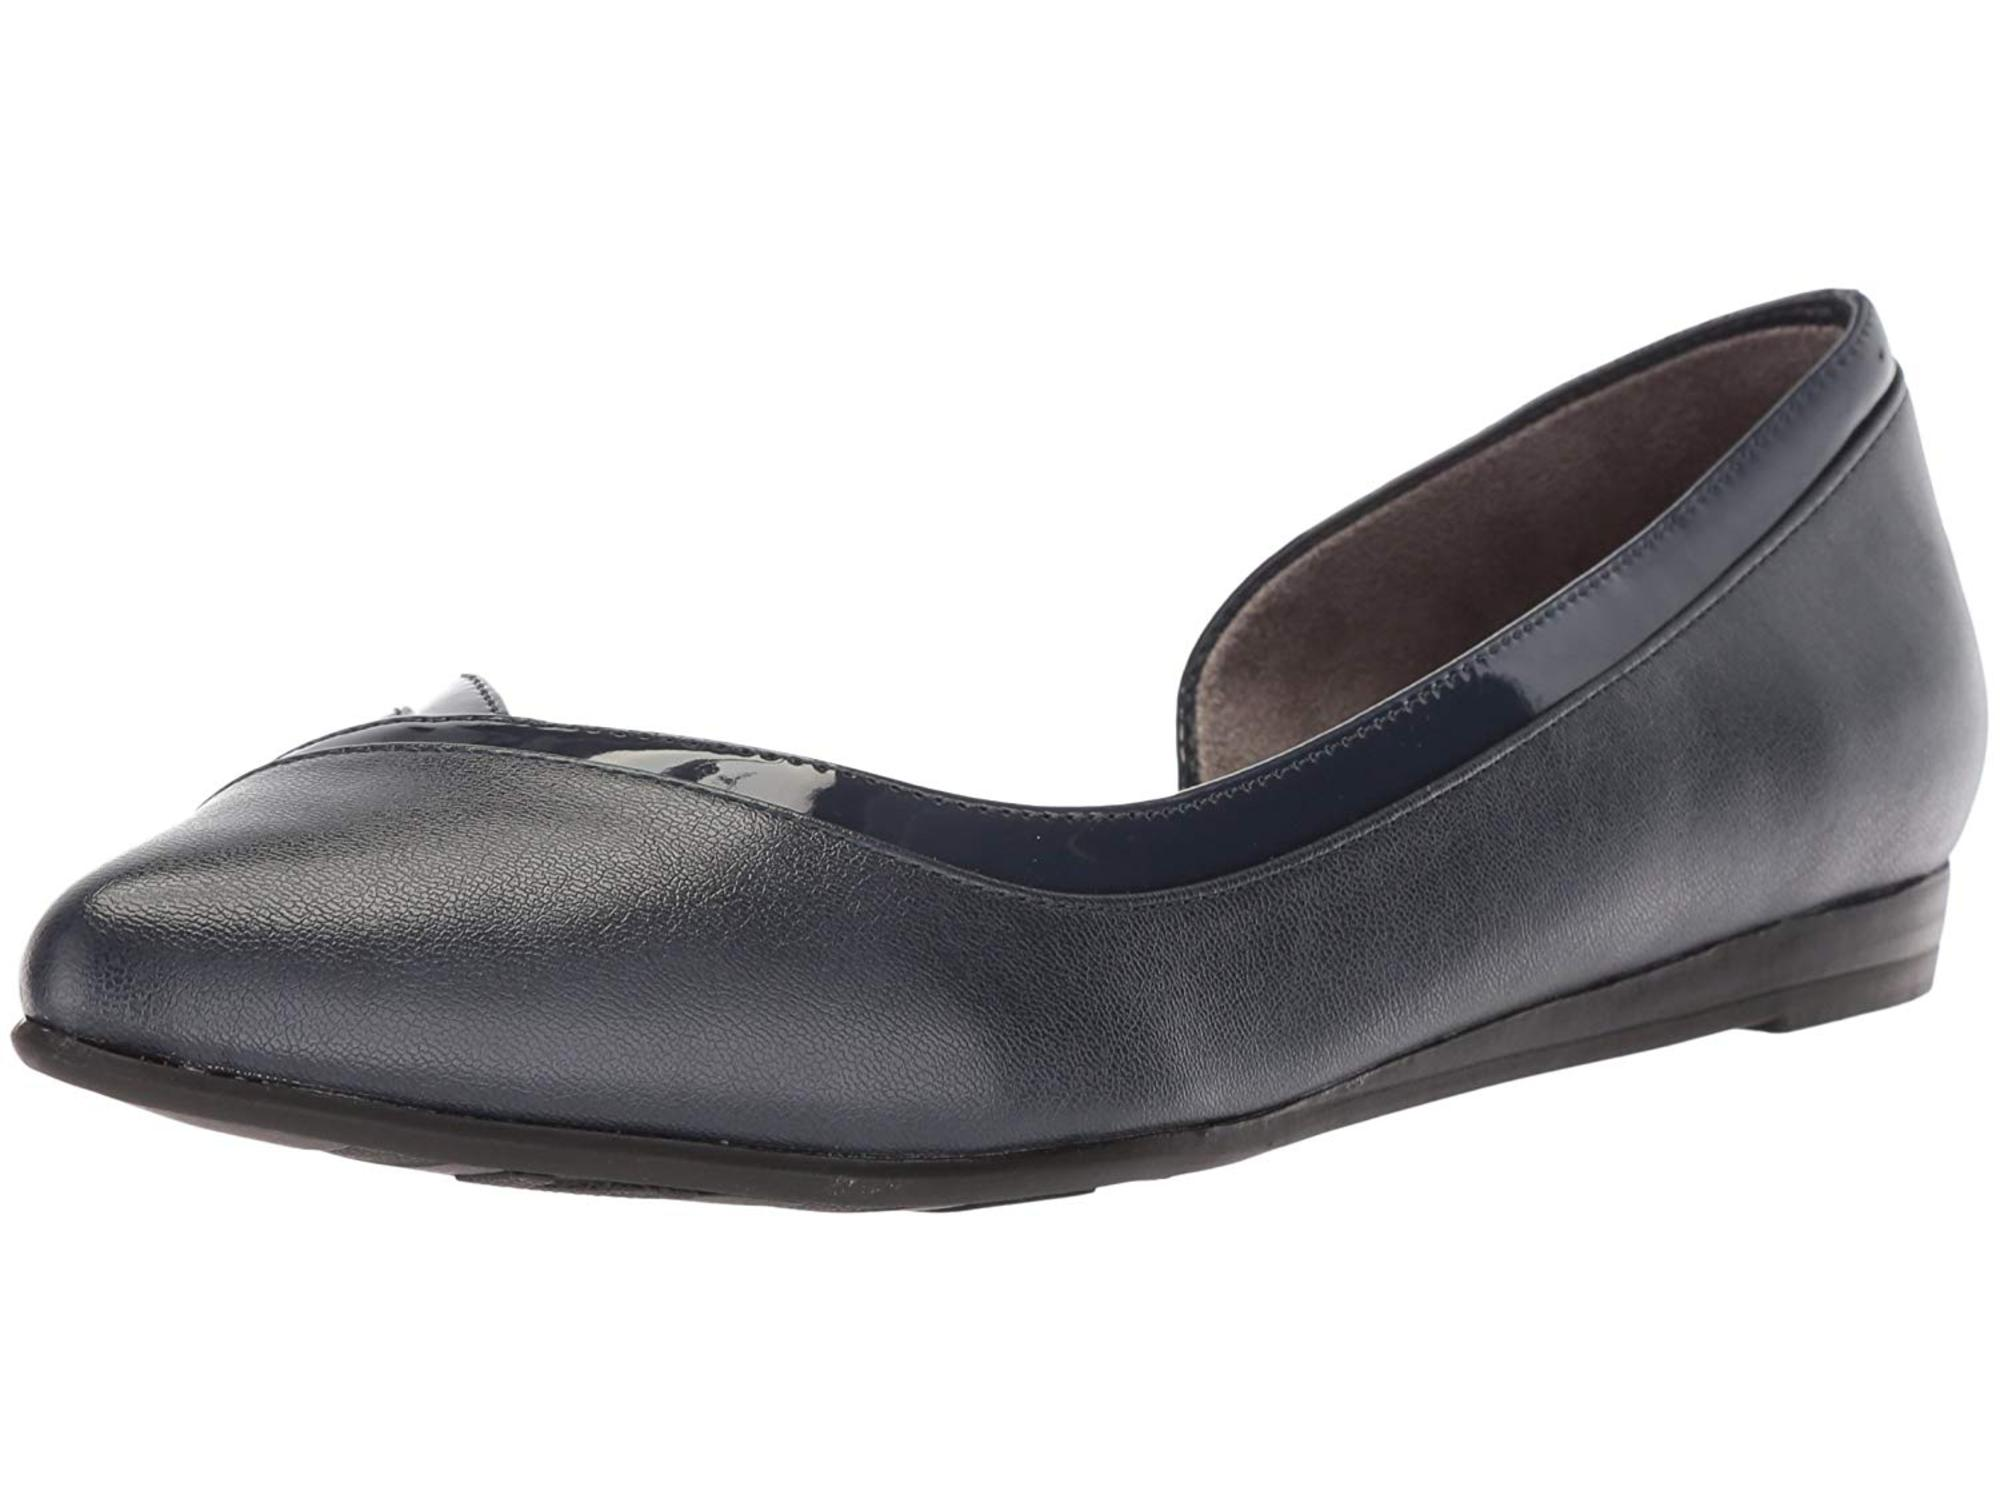 43ecb5dde1a3 Lifestride Womens Quemela Closed Toe Slide Flats